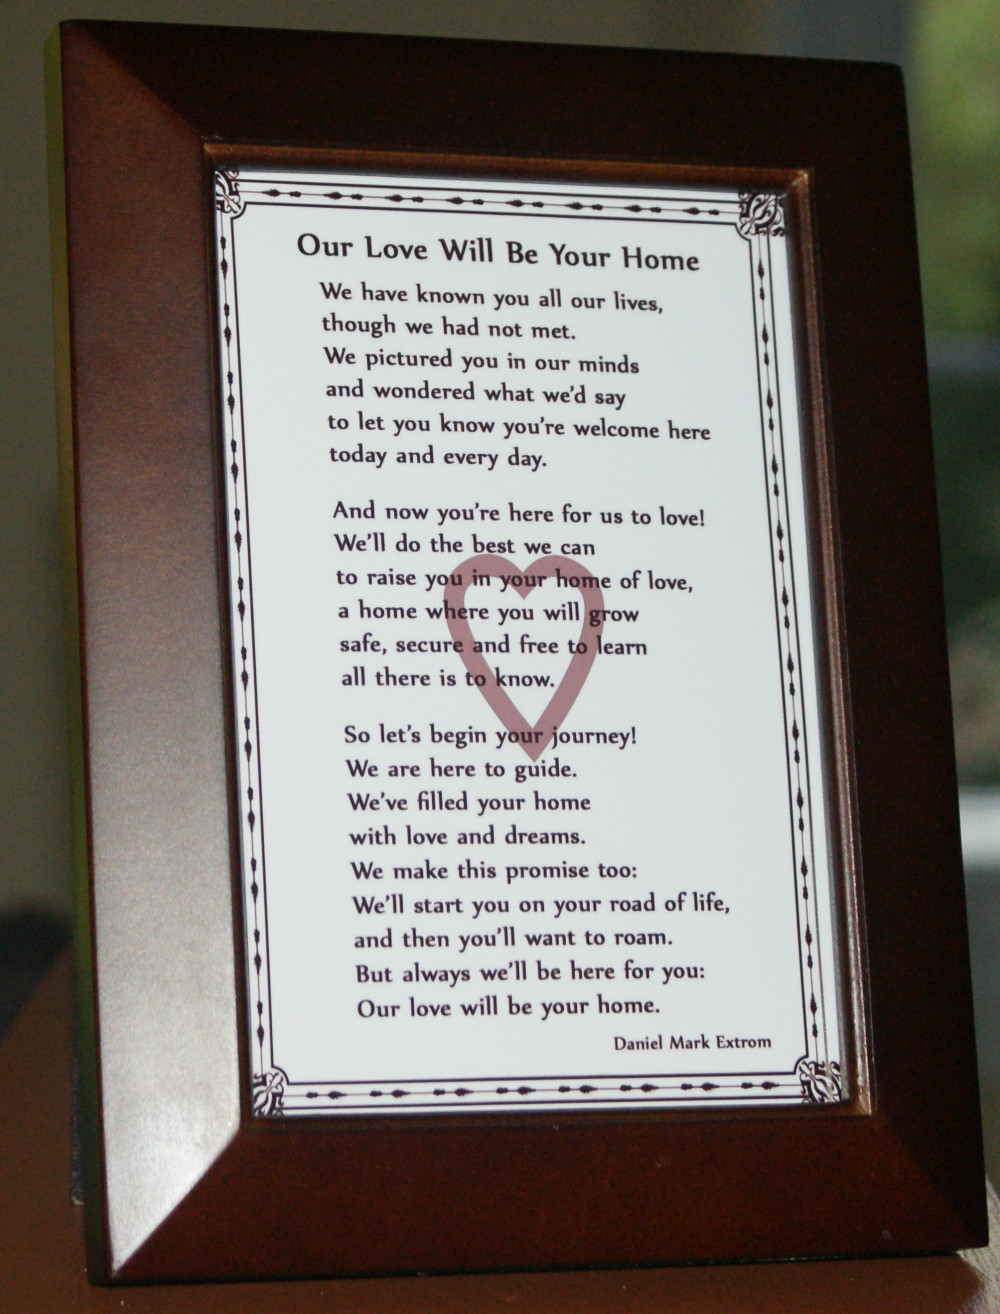 Our Love Will Be Your Home: A Photo Poem to Welcome a New ...